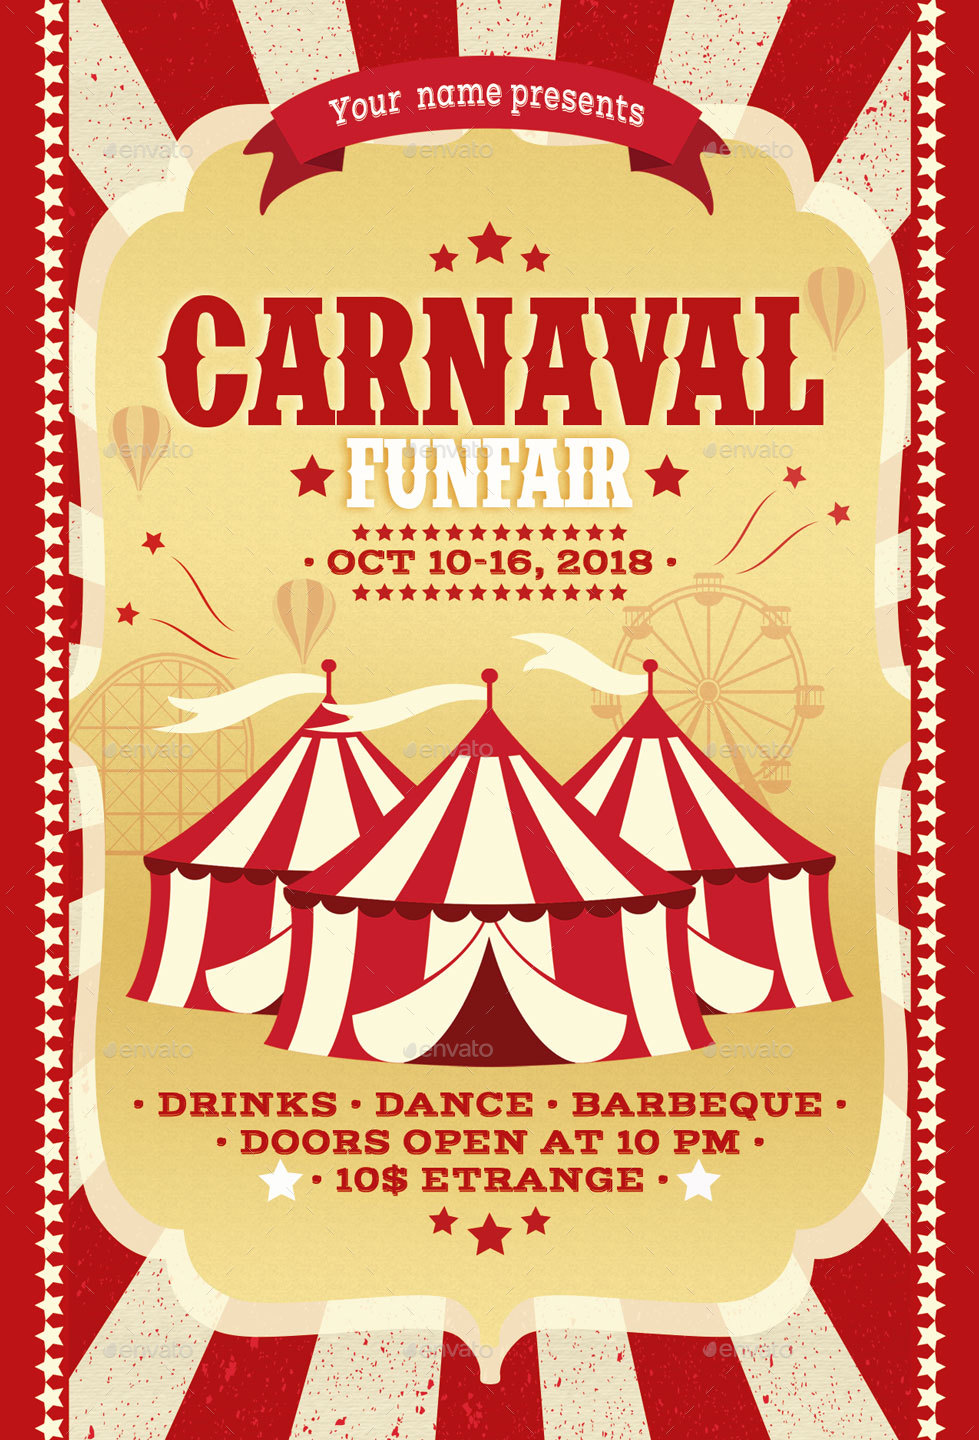 carnival fun fair flyer poster by oloreon